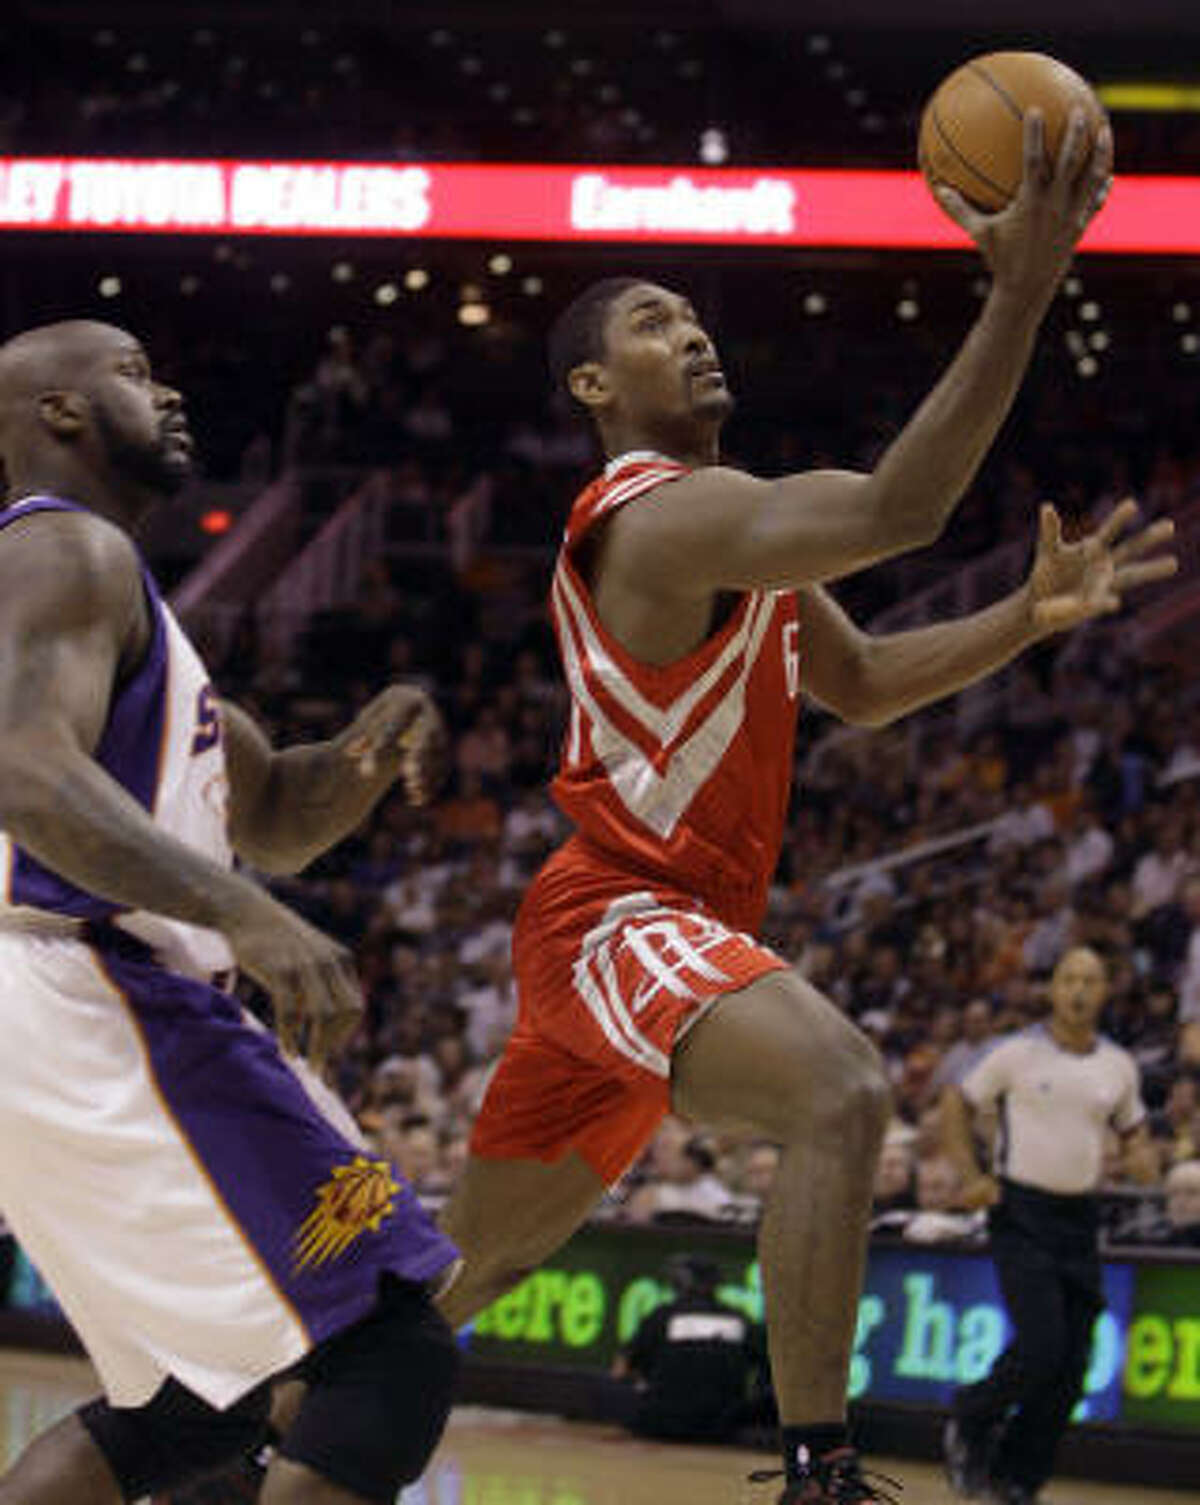 Rockets forward Ron Artest, right, drives to the basket past Phoenix Suns center Shaquille O'Neal, left, in the first quarter.